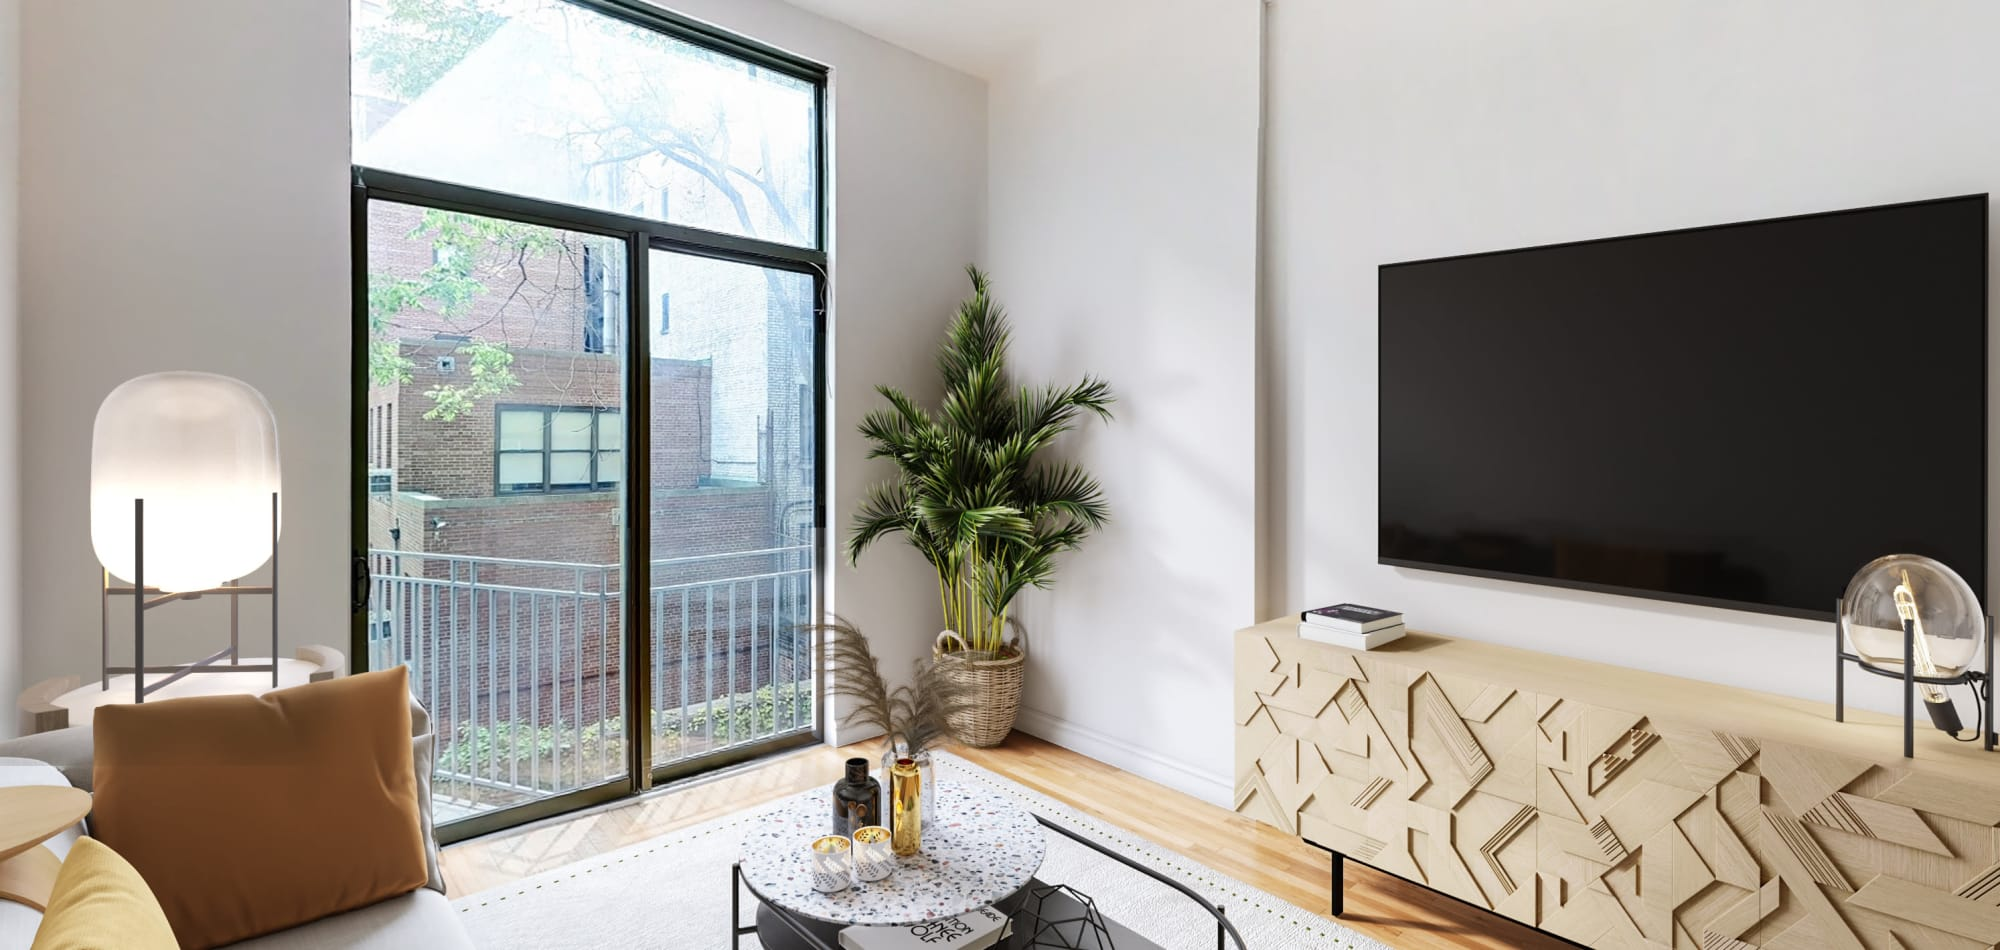 Living area at 210-220 E. 22nd Street in New York, New York